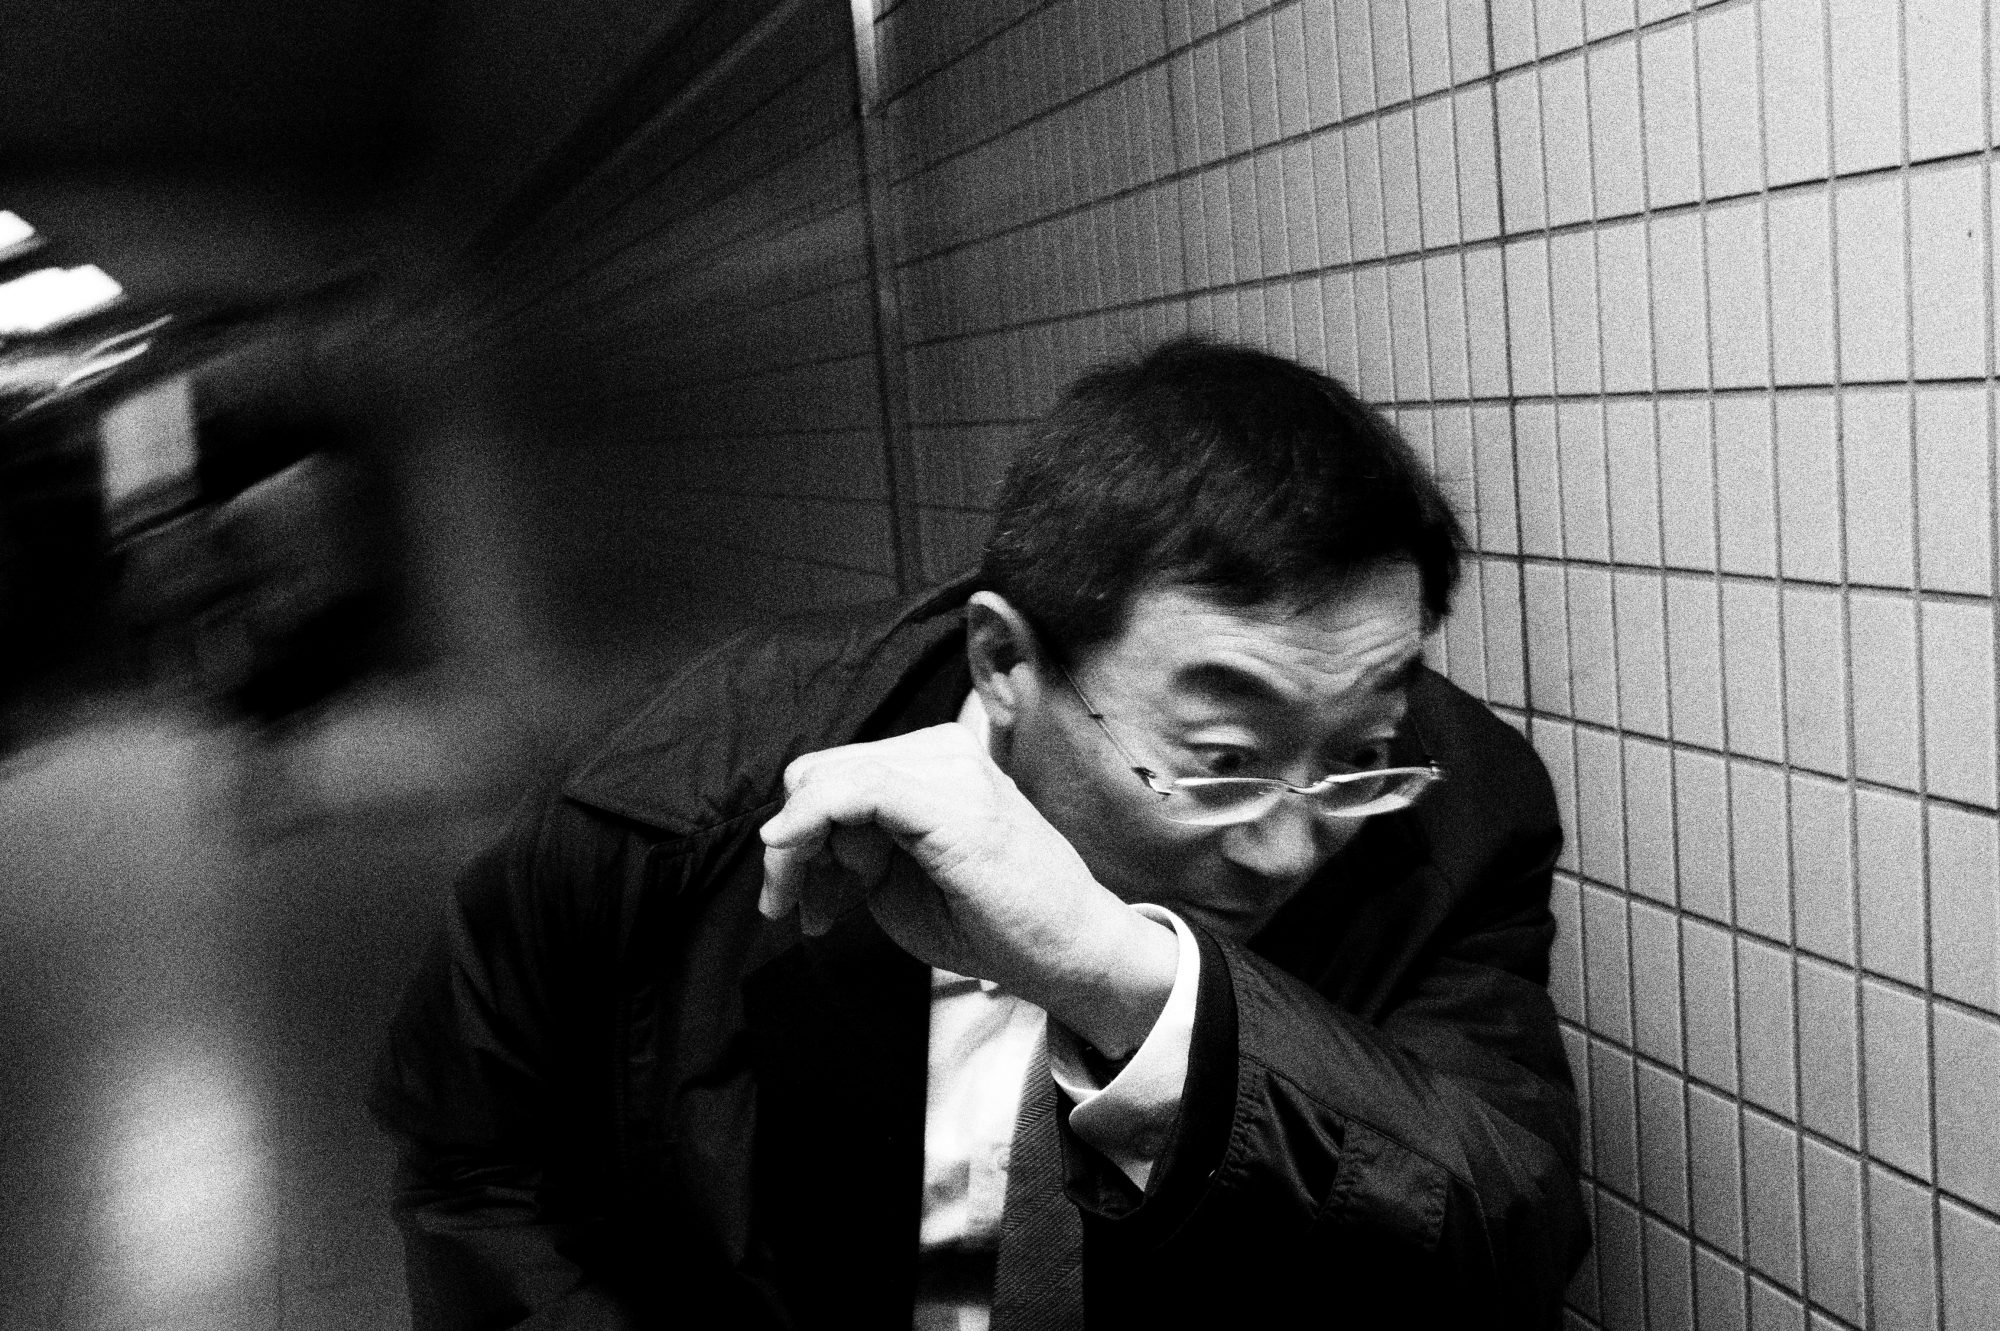 eric-kim-street-photography-flash-2012-dark-skies-over-tokyo